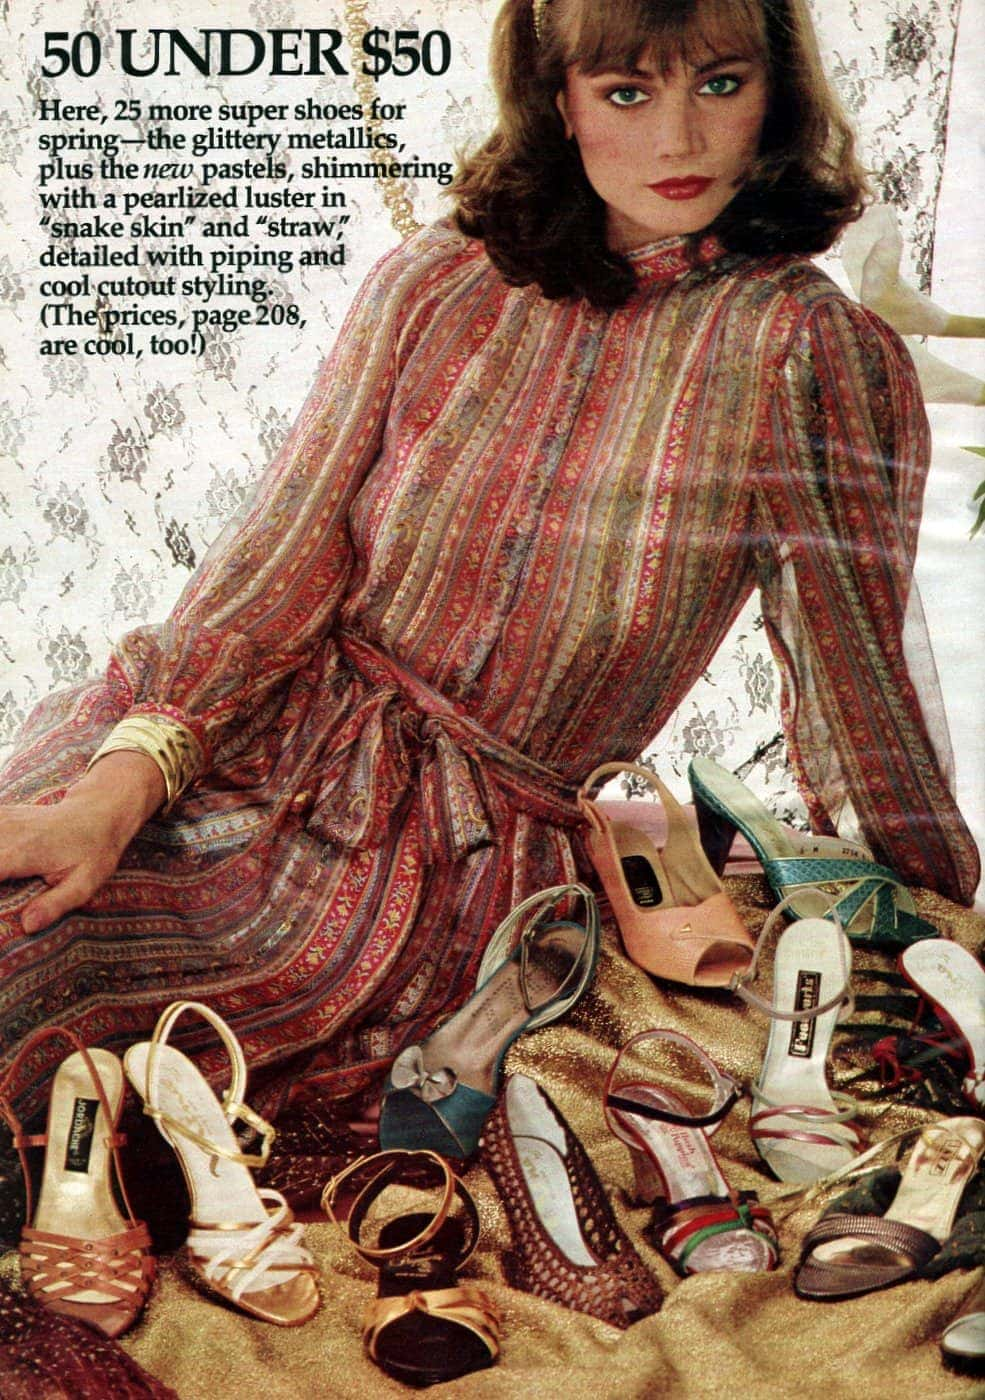 Retro spring shoes from the 80s - 1982 (3)